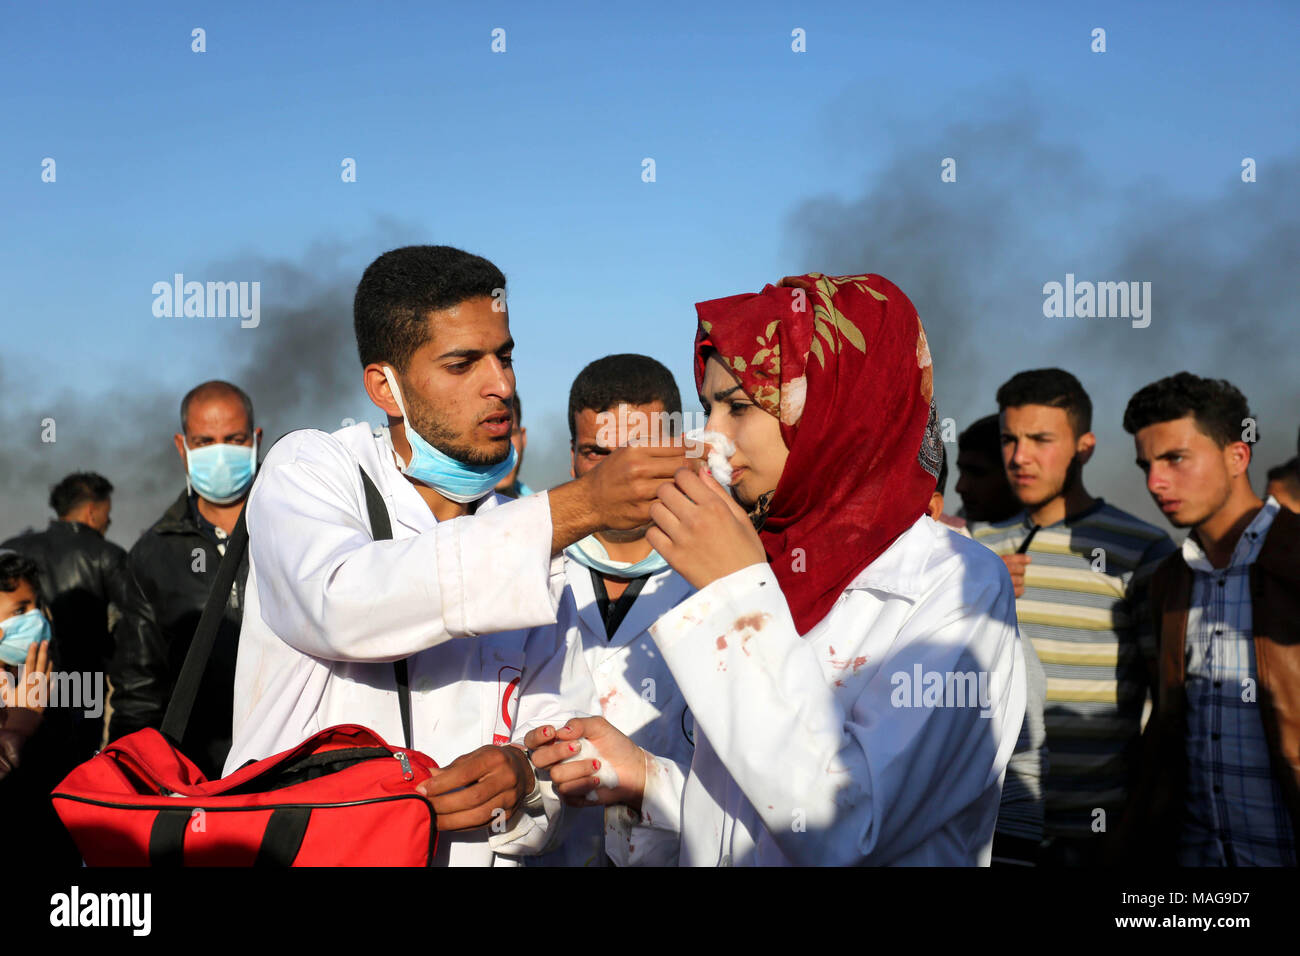 Khan Younis, Gaza Strip, Palestinian Territory. 1st Apr, 2018. Palestinian medical Razan al-Najjar tries to cure herself after she was gas inhaled fired by Israeli security forces during clashes with Palestinian protesters in a protest, at the Israel-Gaza border, demanding the right to return to their homeland, in Khan Younis in the southern Gaza strip on April 1, 2018 Credit: Ashraf Amra/APA Images/ZUMA Wire/Alamy Live News - Stock Image